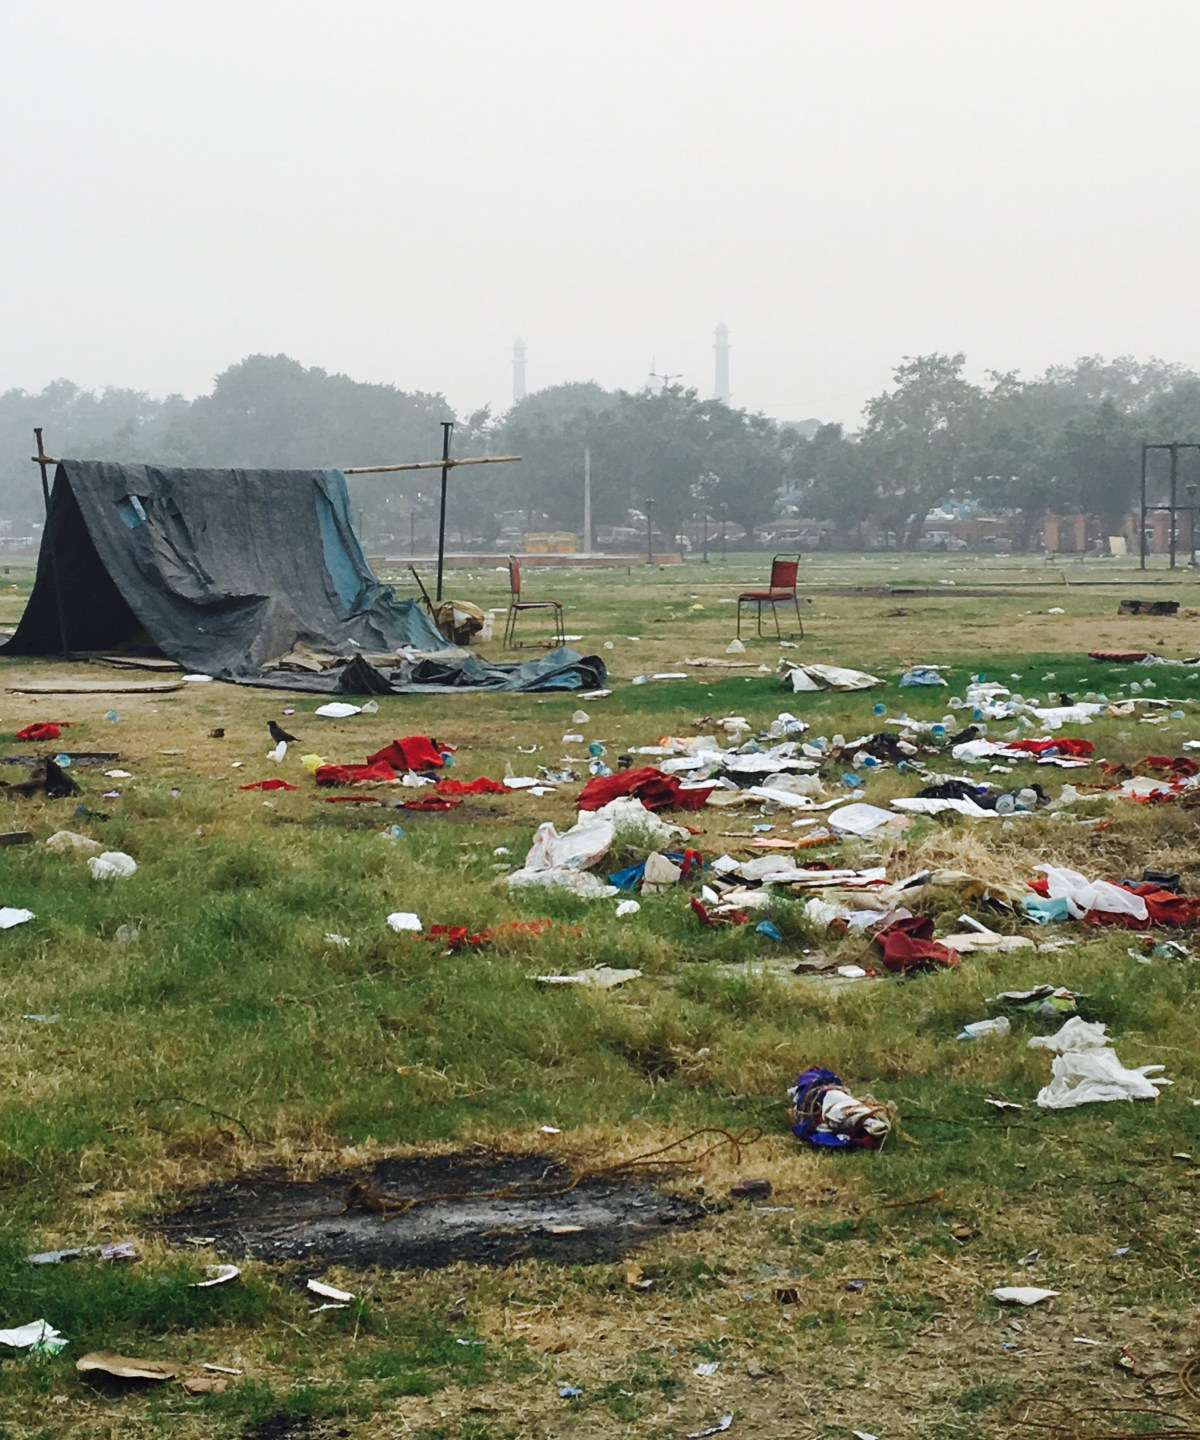 Homeless camp in India